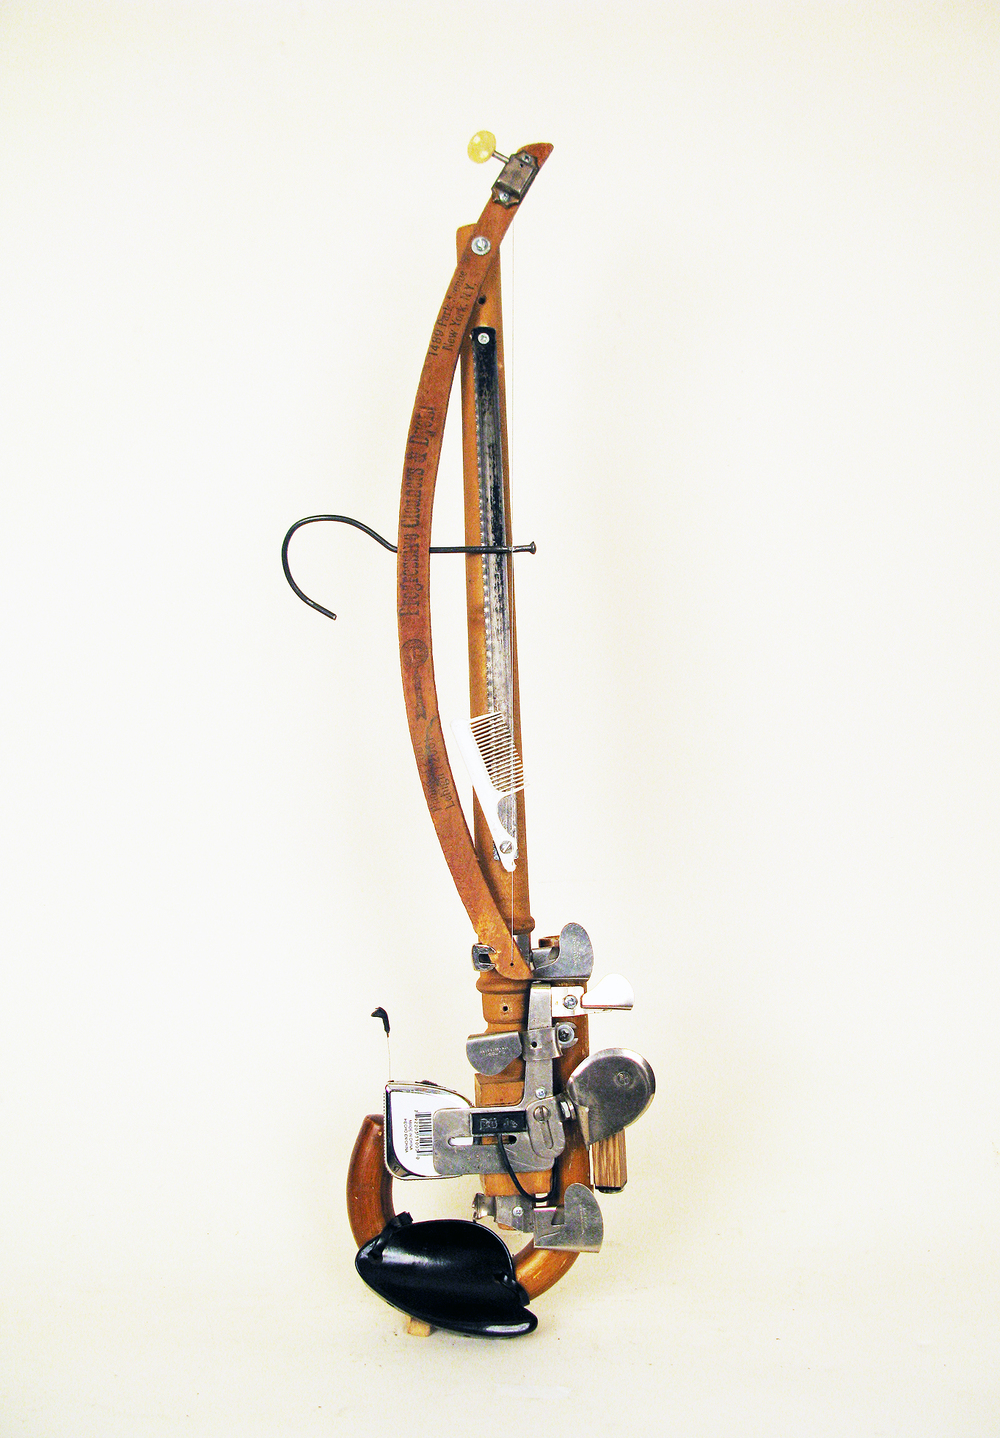 Coat Hanger Tape Measure Violin.jpg